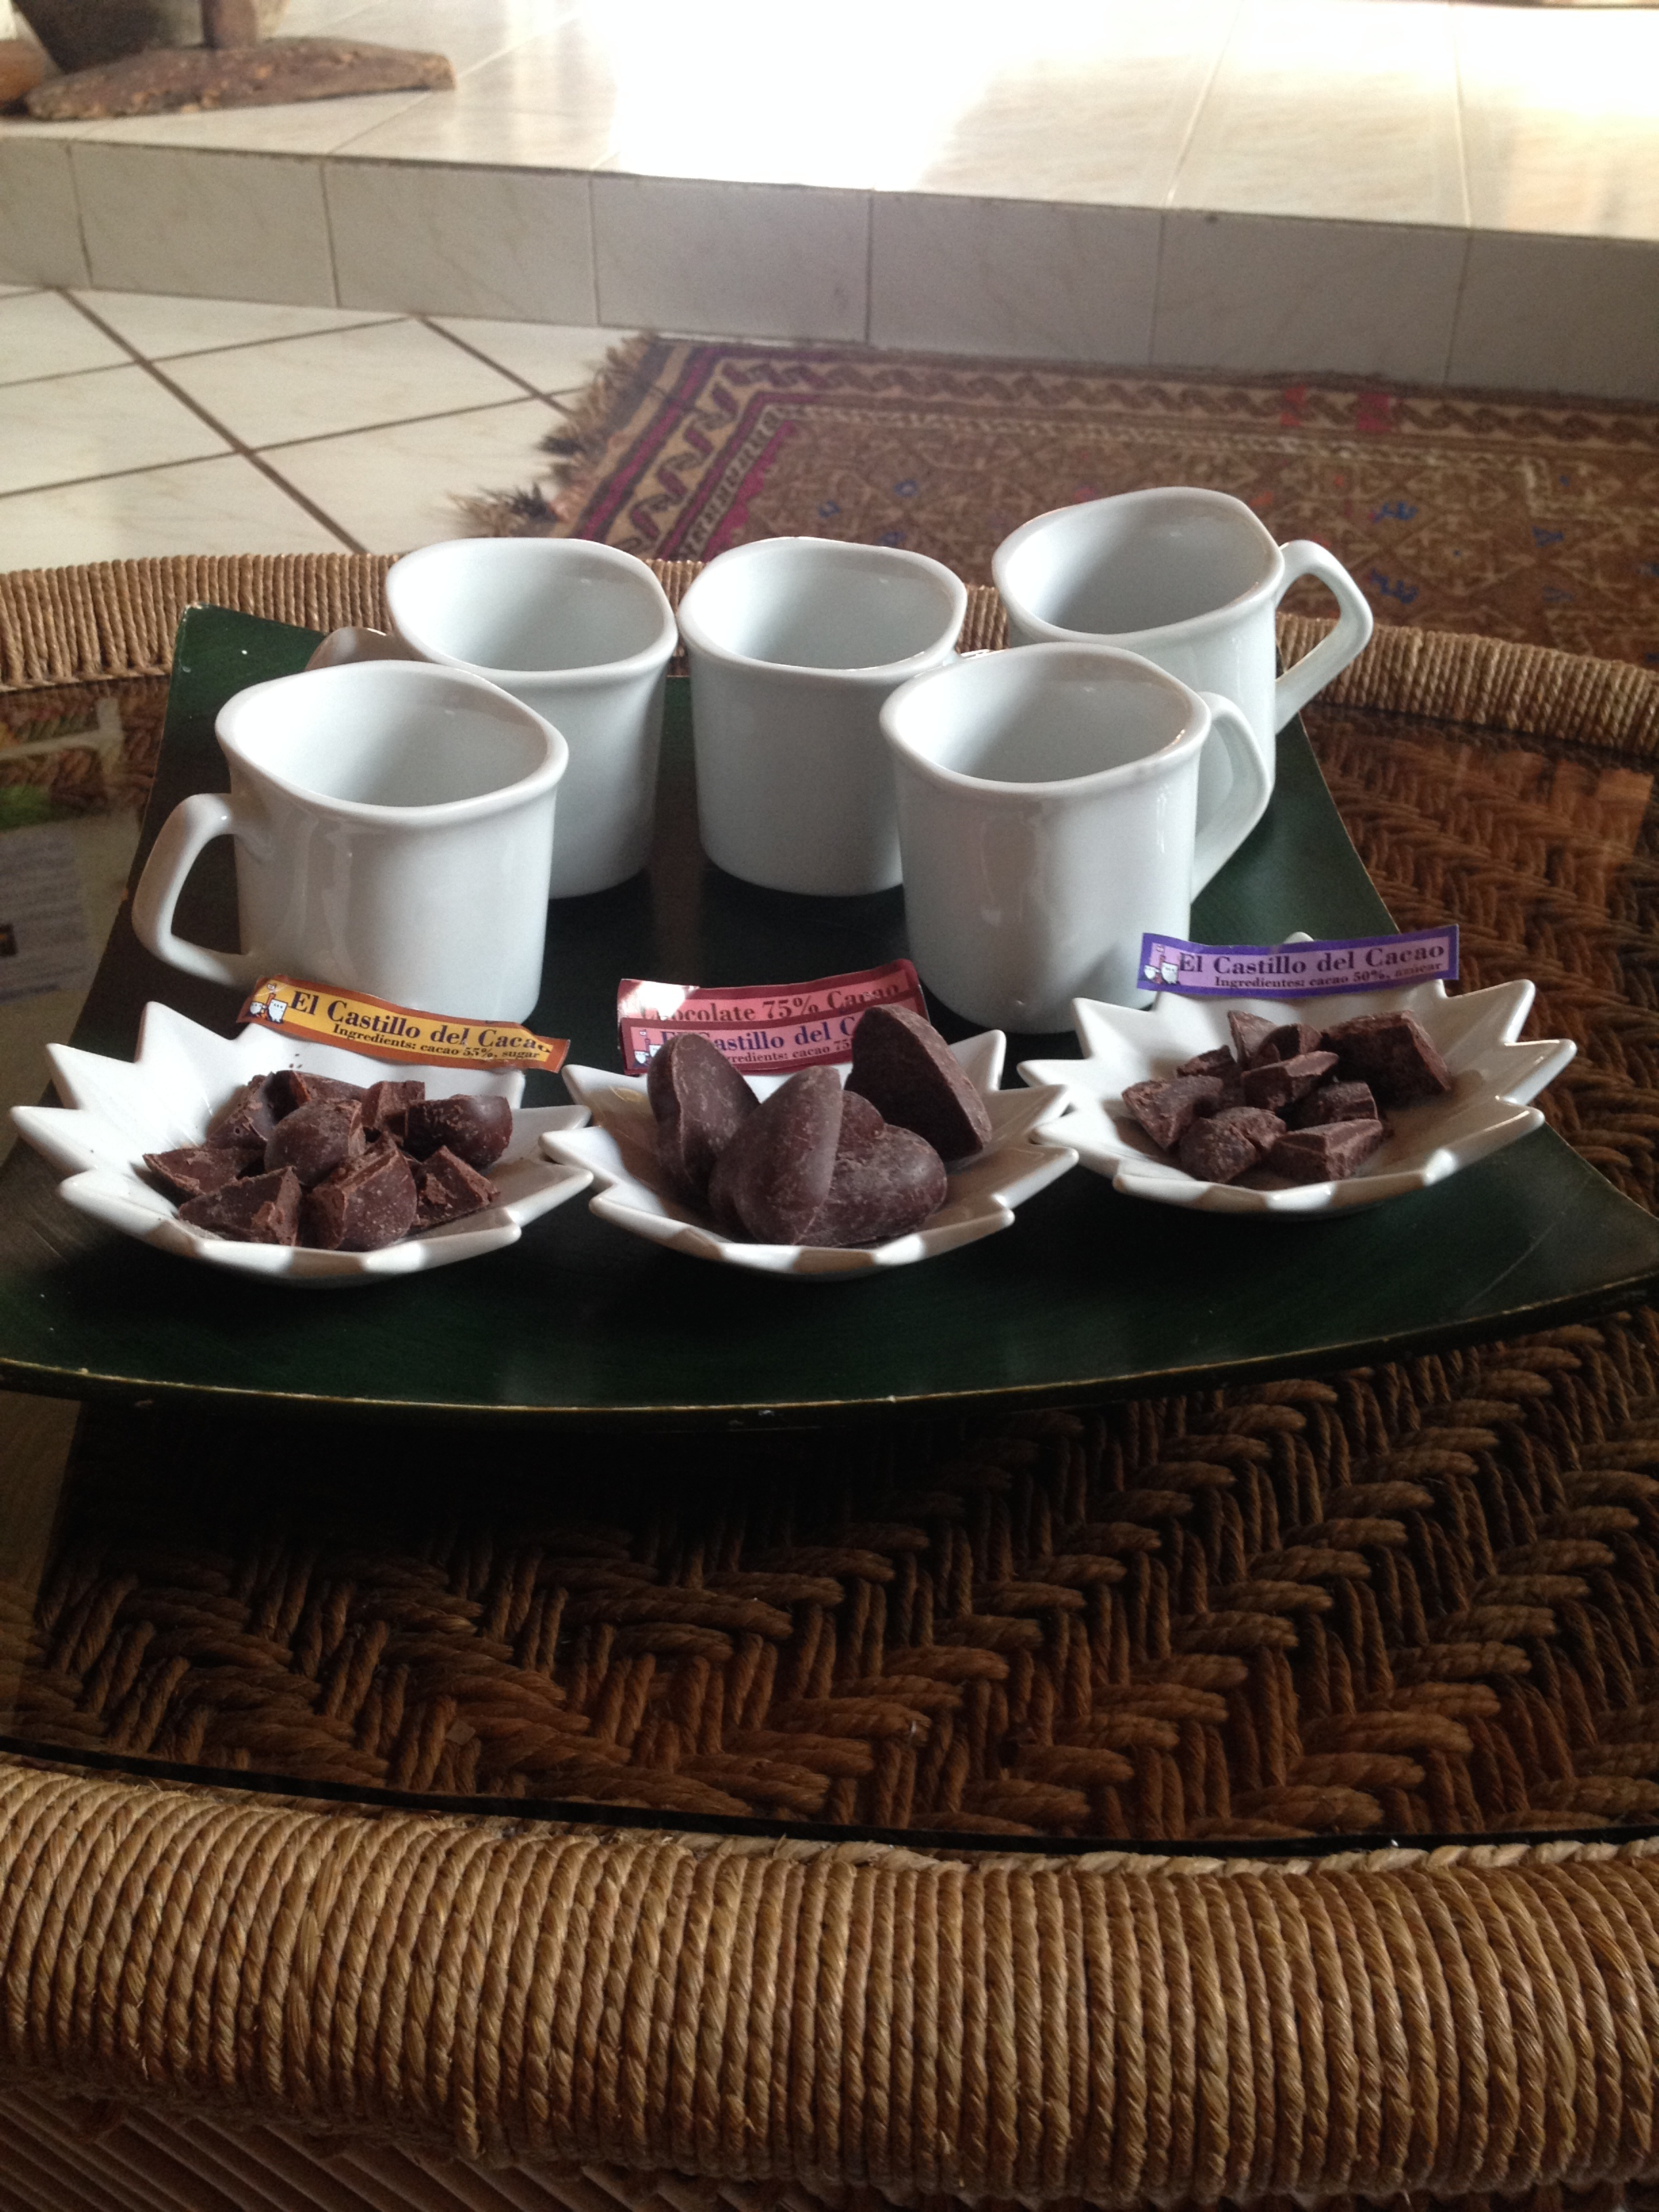 Chocolate tasting and coffee